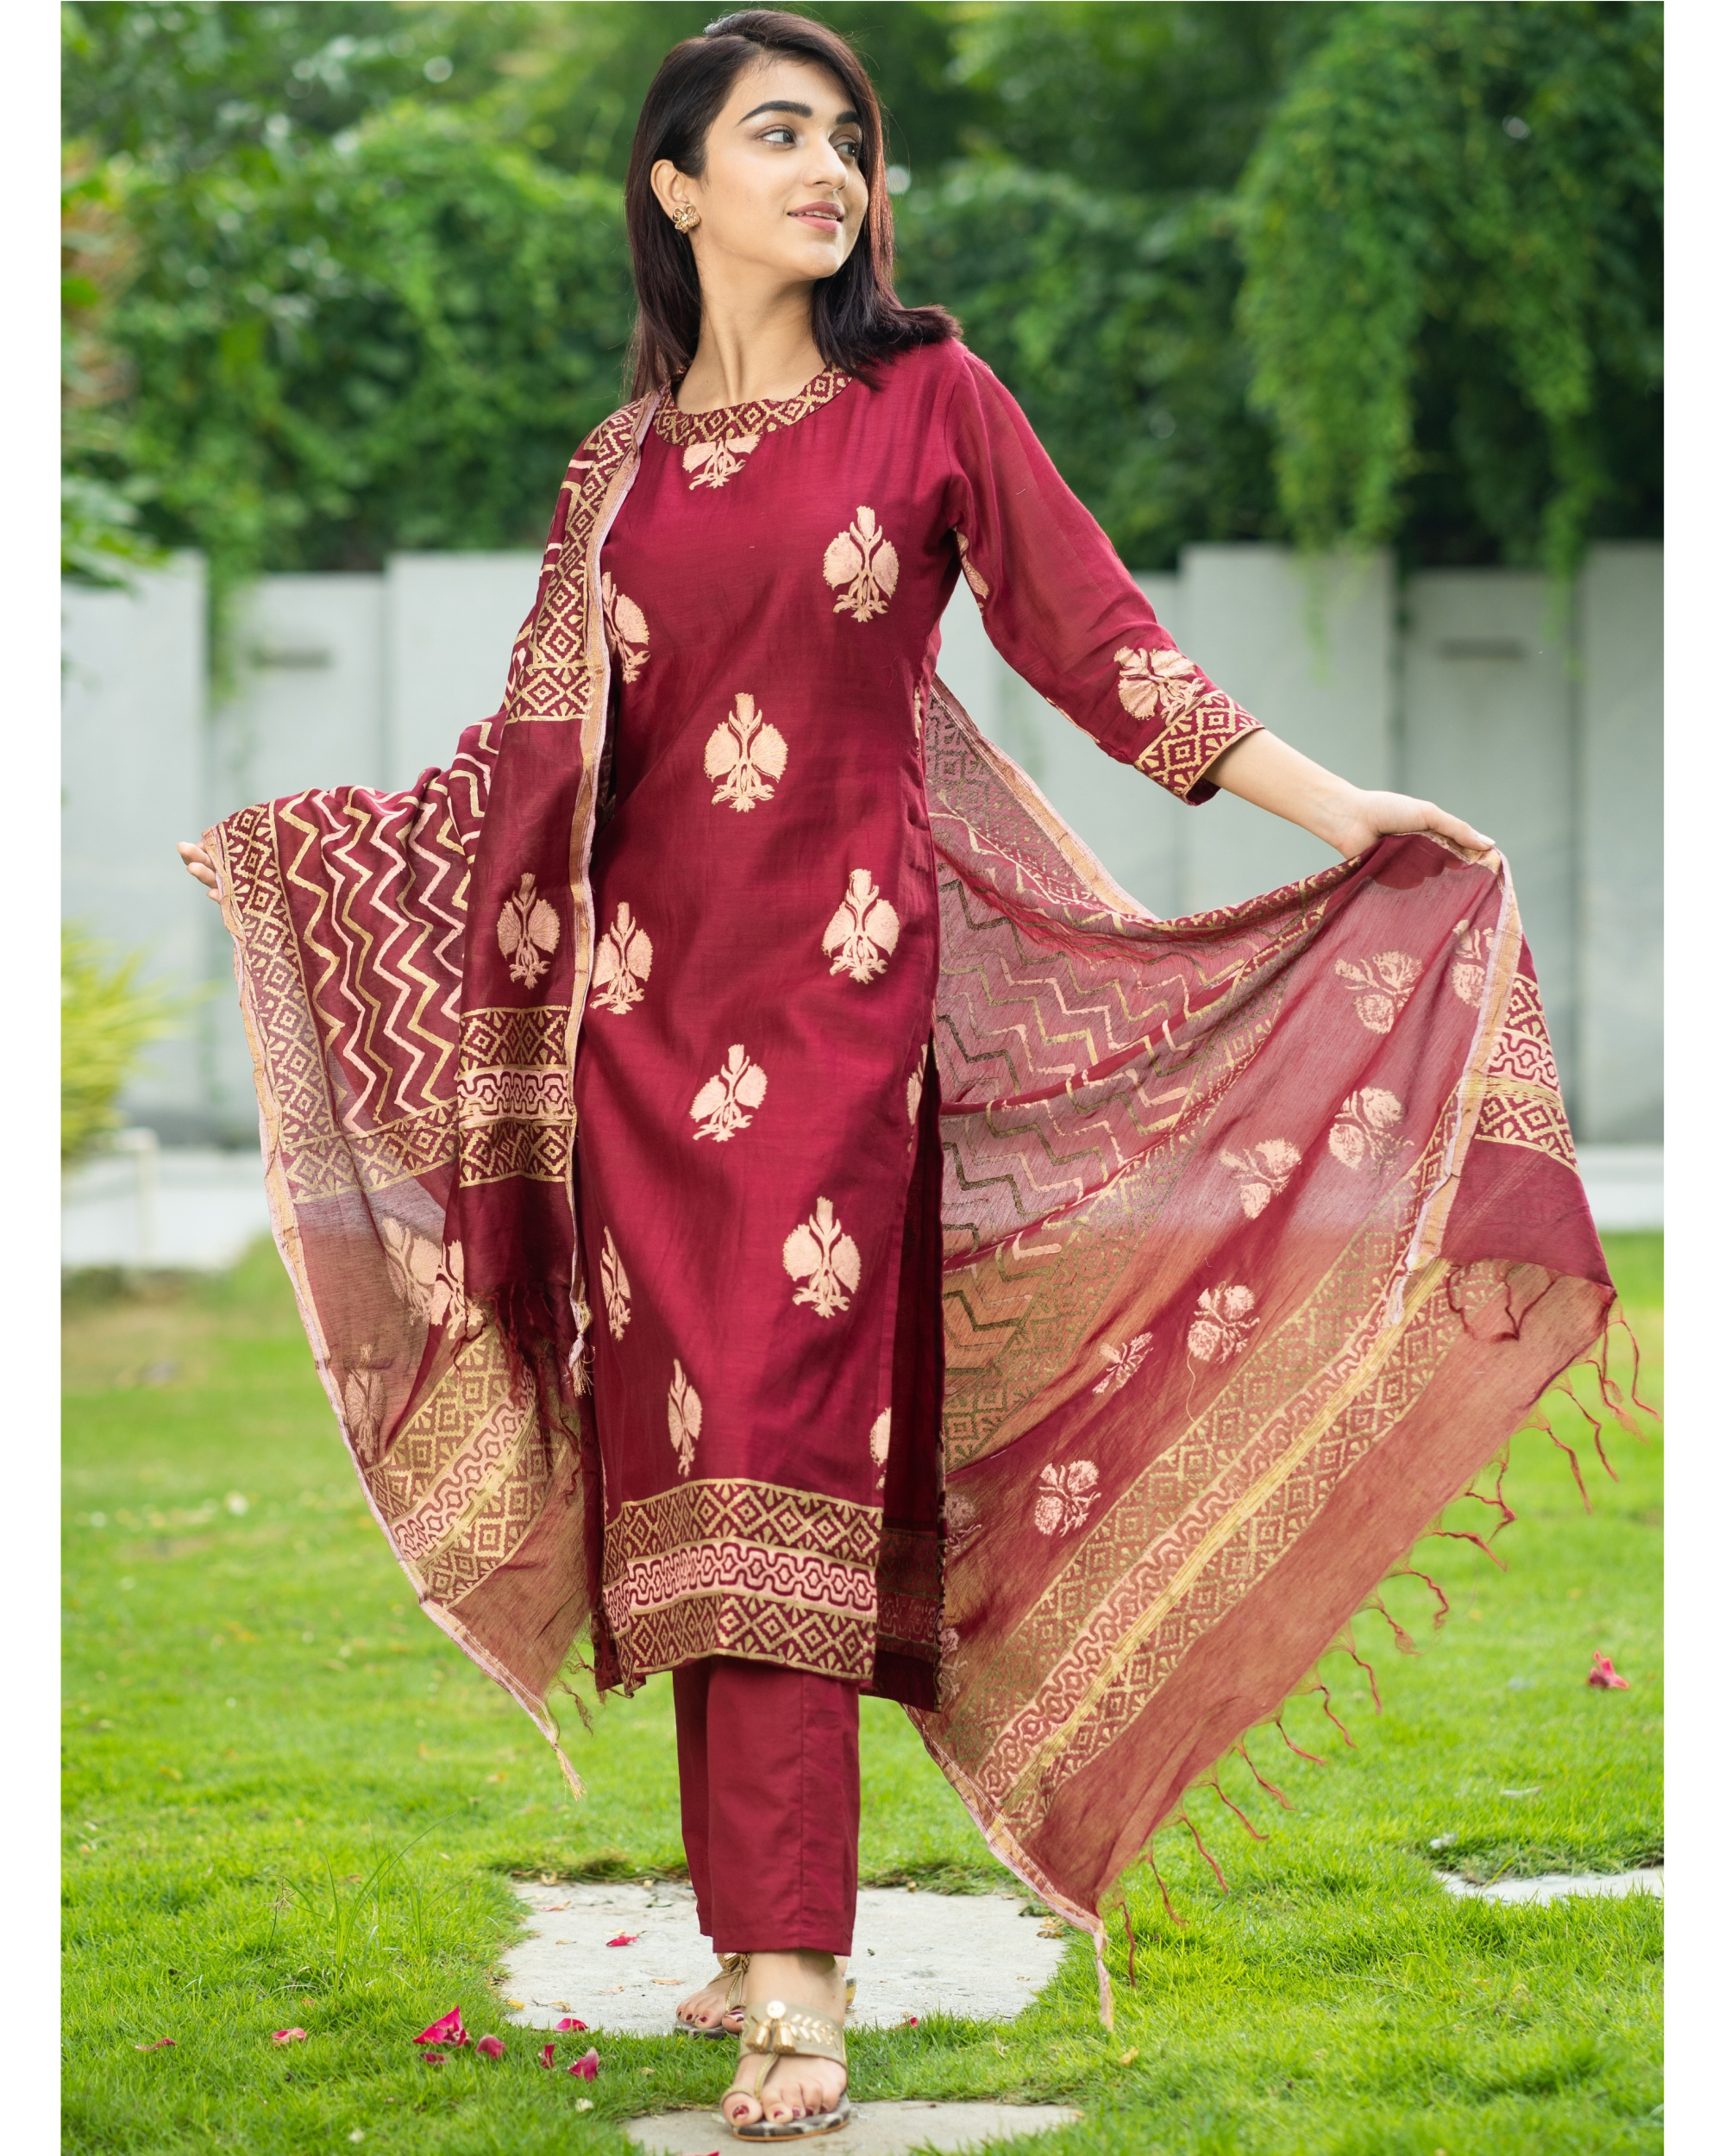 Maroon Chanderi Cotton Suit Set with Gold Printed Motifs - Set of Three